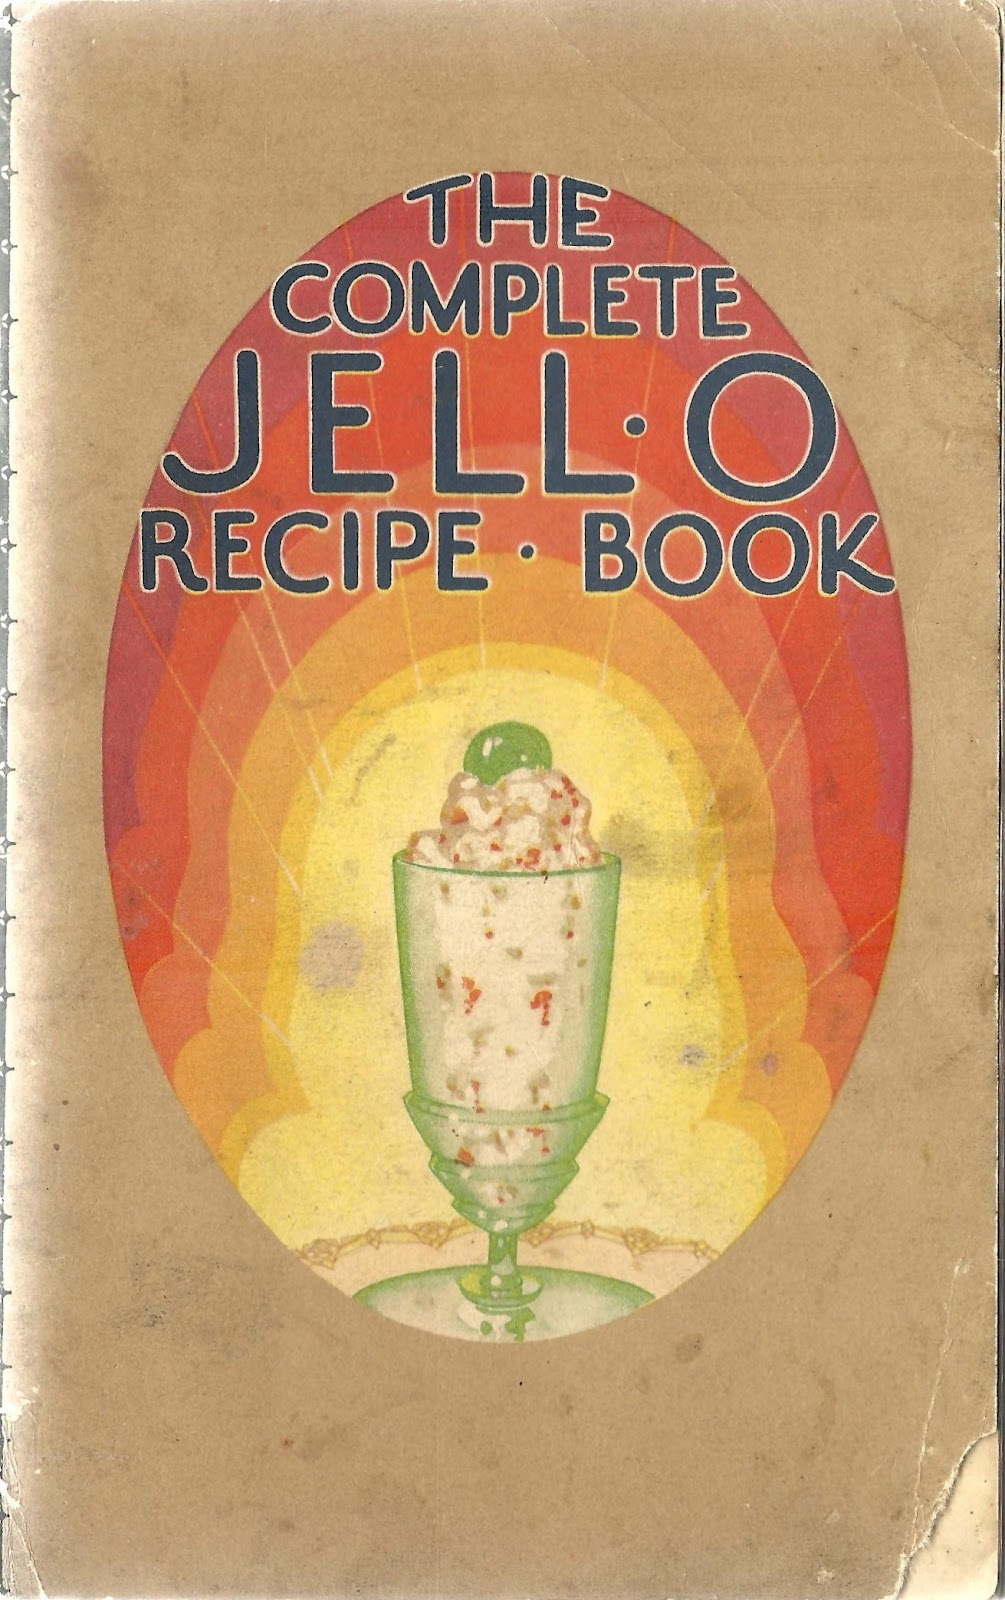 Book cover for The Complete Jello Recipe Book